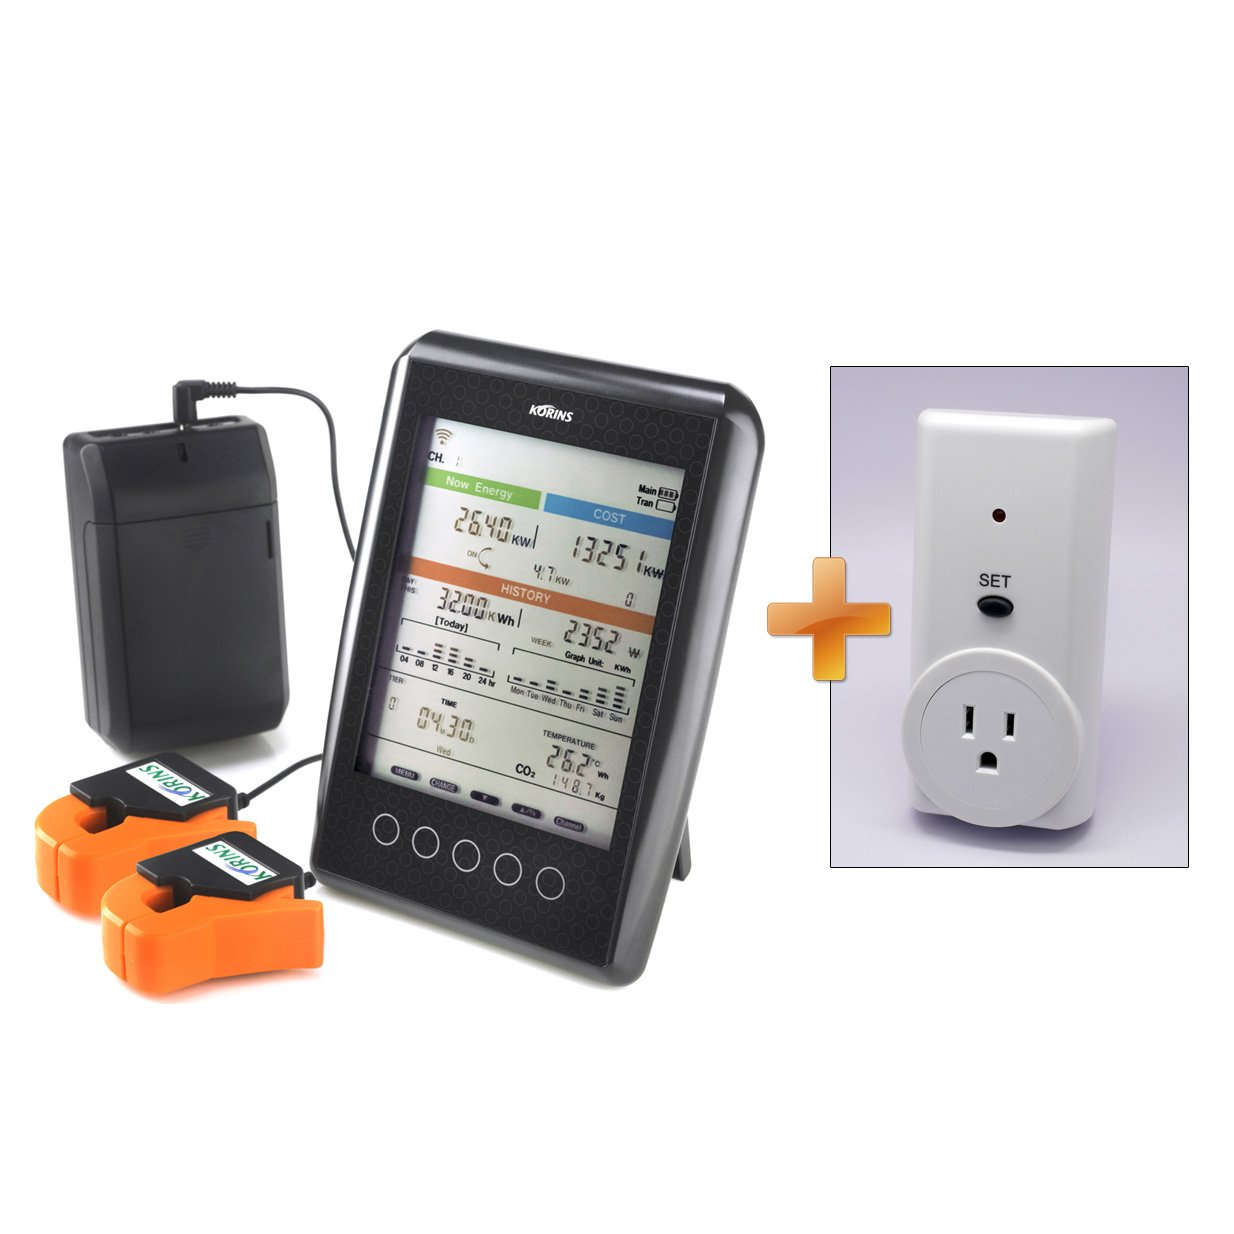 Korins MyWatt 10ch. Wireless Electricity Monitor, SEM3010B2 for USA